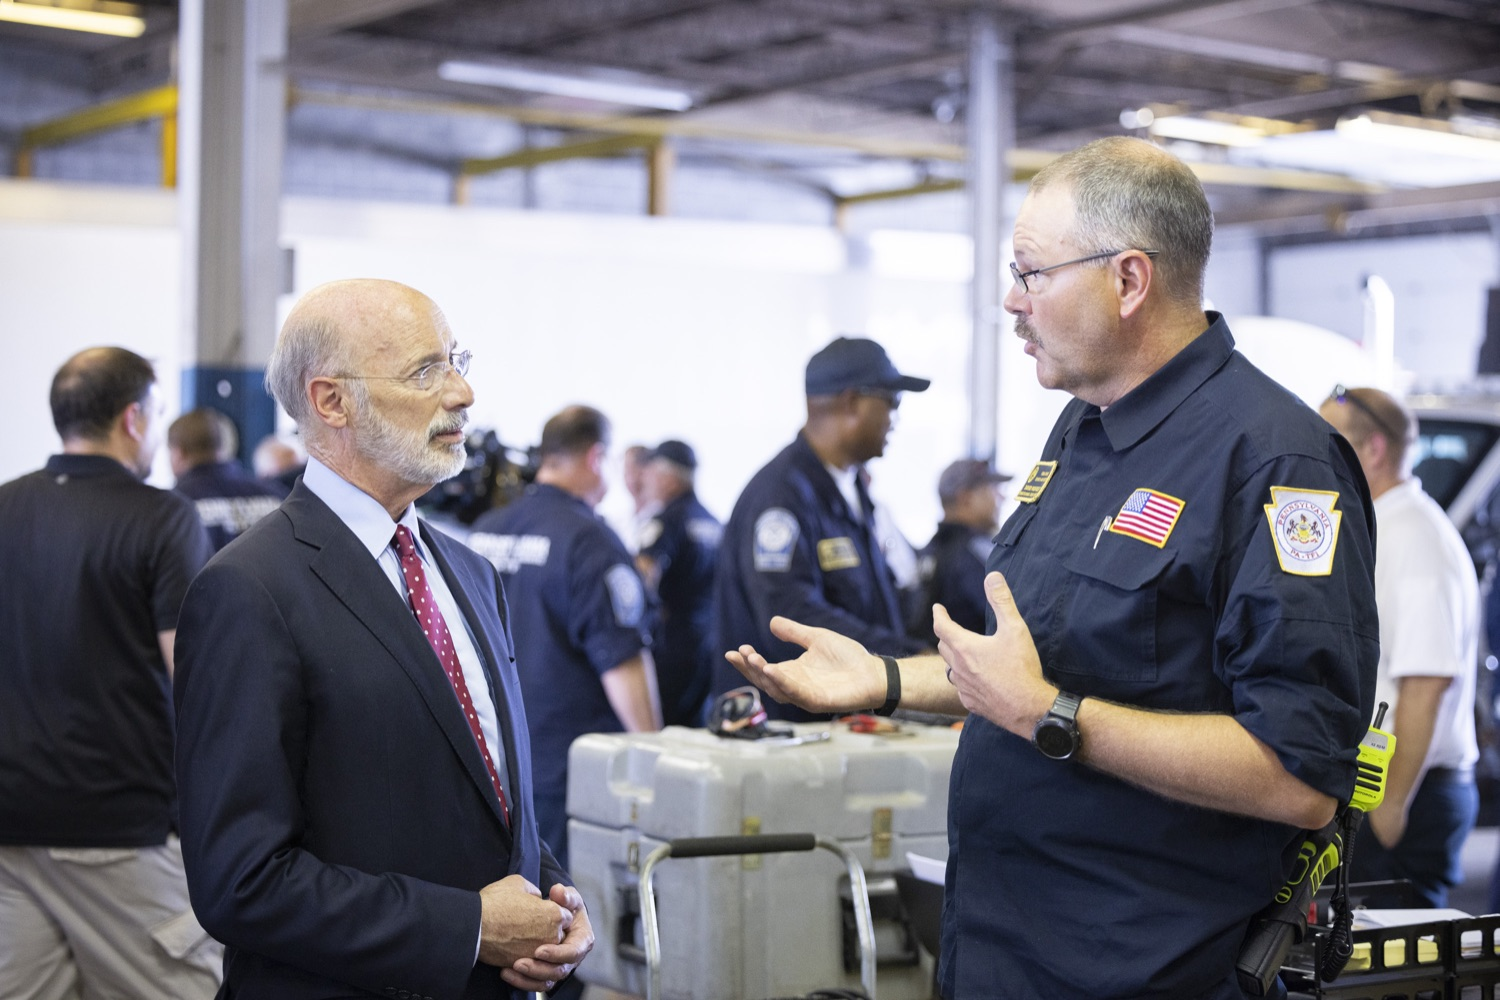 """<a href=""""https://filesource.wostreaming.net/commonwealthofpa/photo/18936_gov_taskforceone_dz_006.jpg"""" target=""""_blank"""">⇣Download Photo<br></a>Governor Tom Wolf speaking to PEMA Director Randy Padfield.  Governor Tom Wolf thanked members of Pennsylvania-Task Force 1 (PA- TF1), who returned today to Philadelphia after spending two weeks assisting with search and rescue efforts at the site of the recent deadly building collapse in Surfside, Florida.  Philadelphia, Pa.  July 16, 2021"""